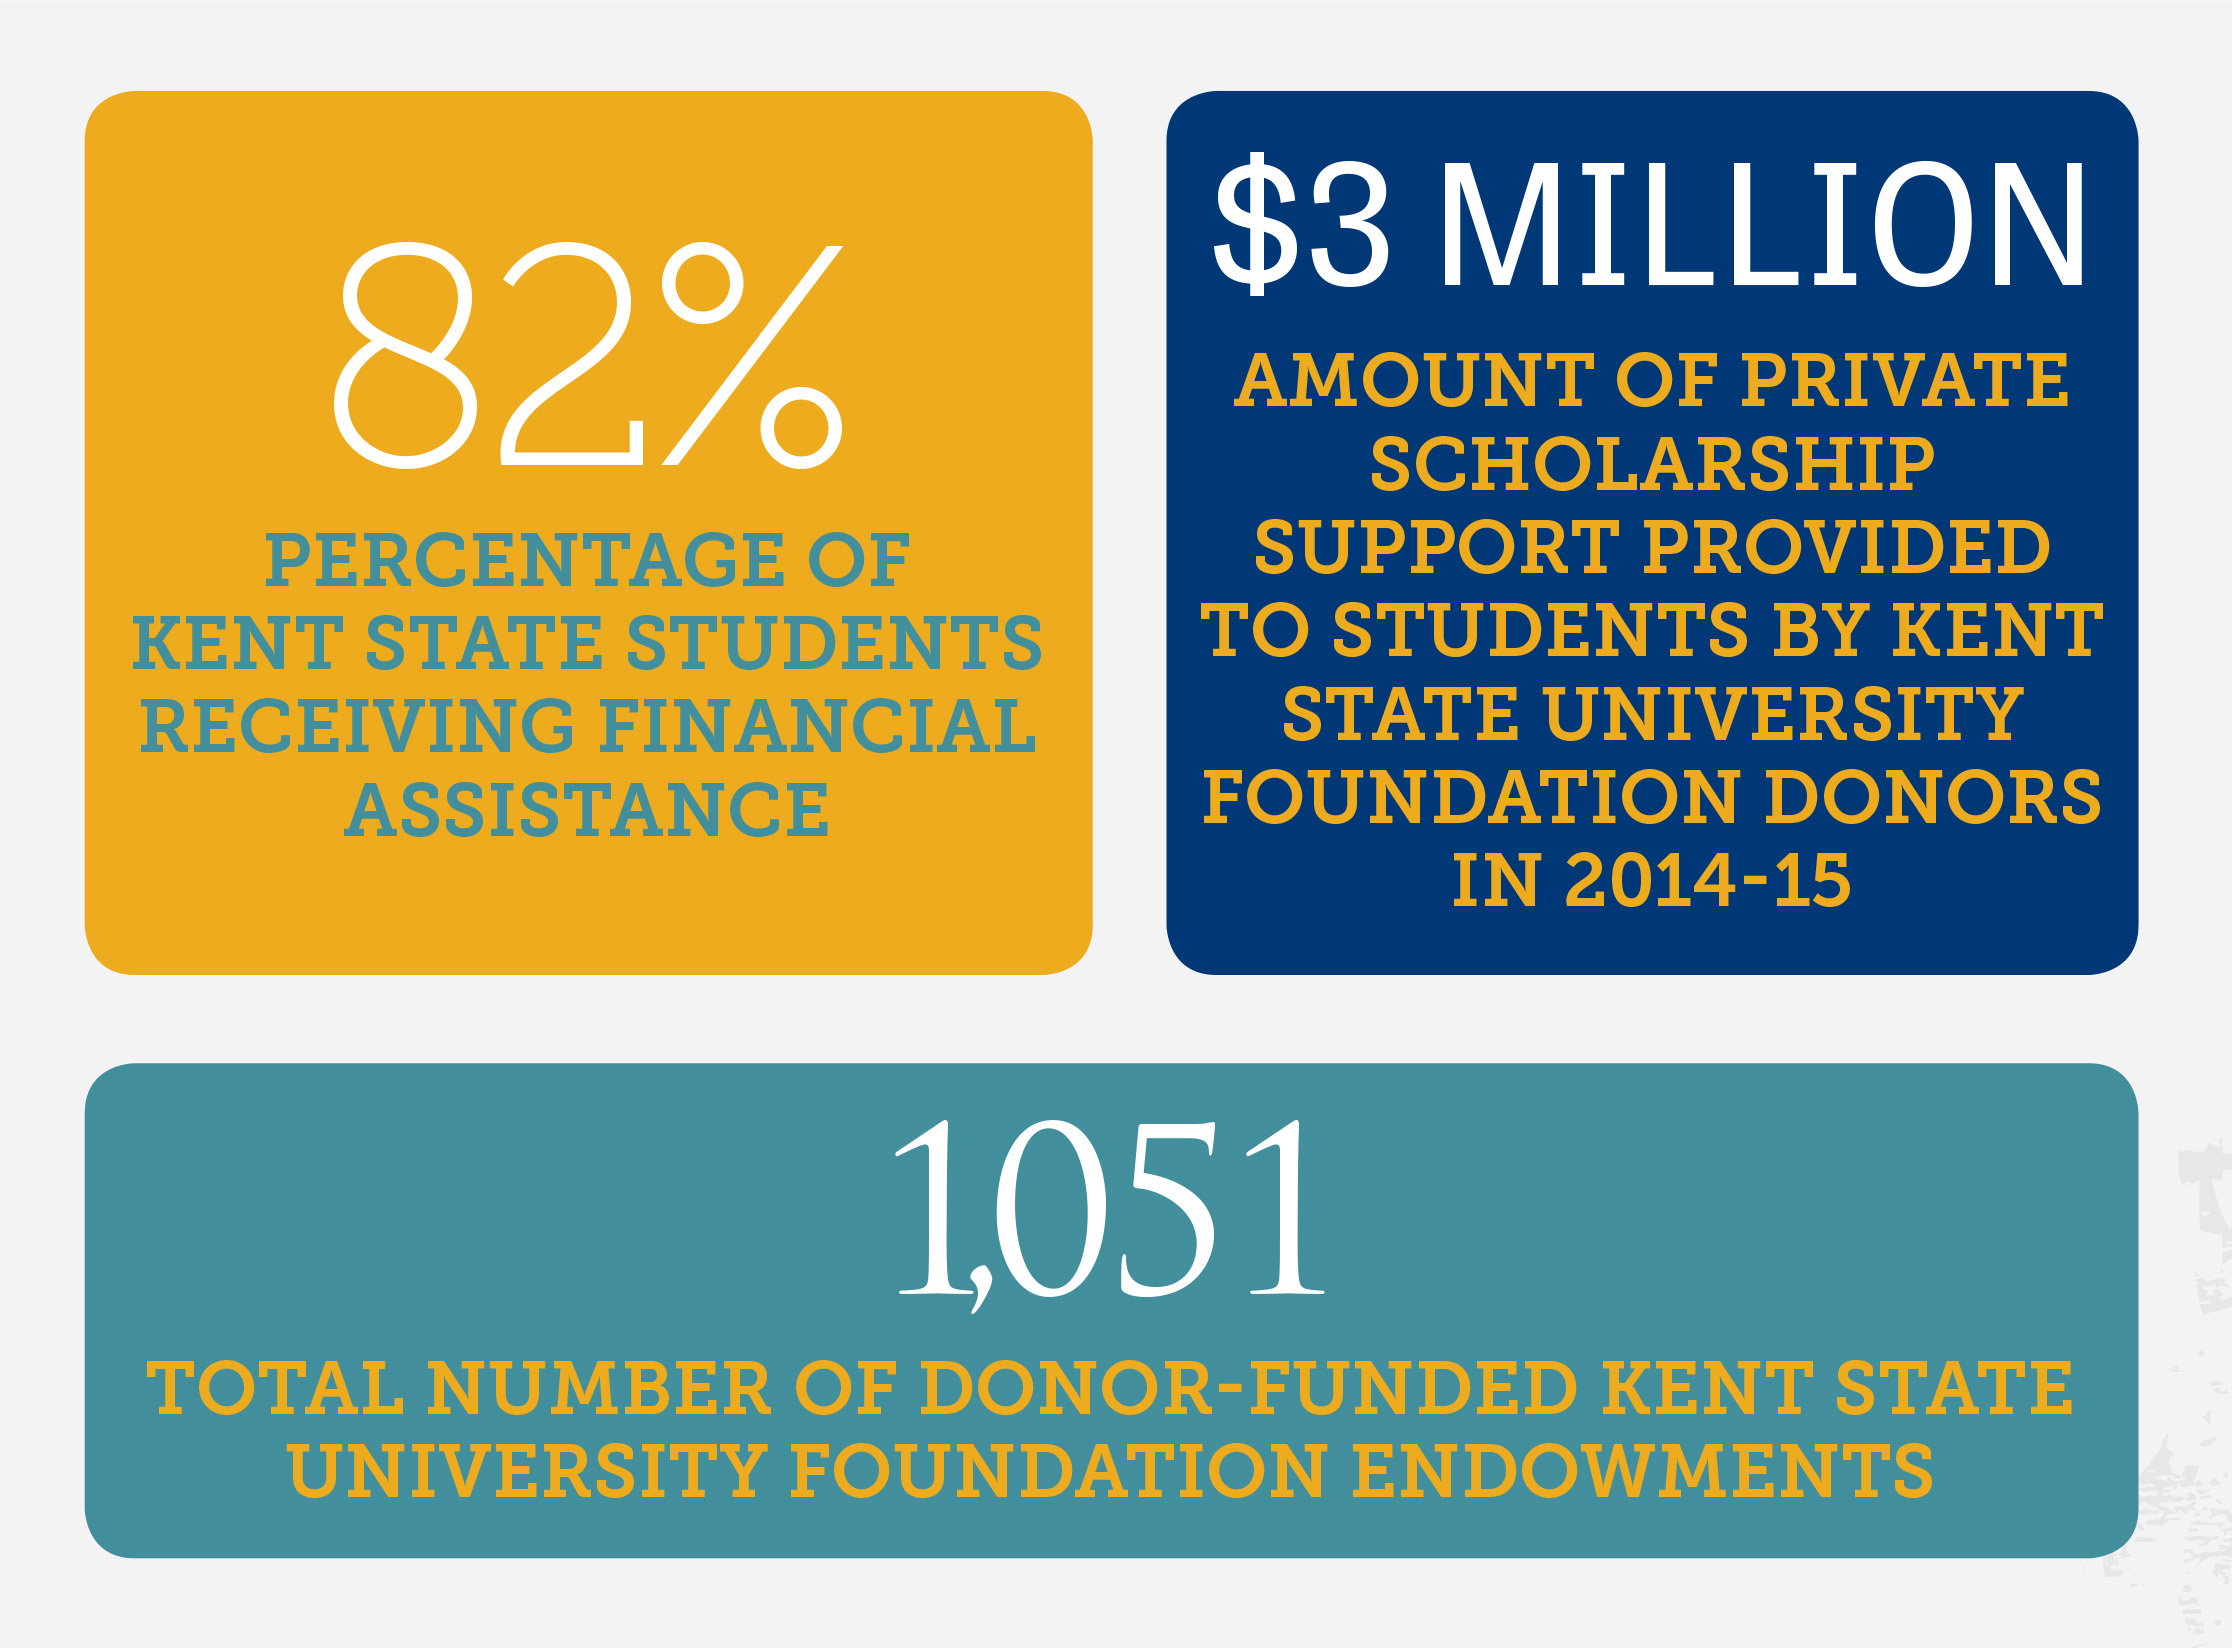 Graphic showing 82% of Kent State students receiving financial assistance; $3 million amount of private scholarship support provided to students by Kent State University Foundation donors in 2014-15; 1,051 donor-funded Kent State University Foundation endowments